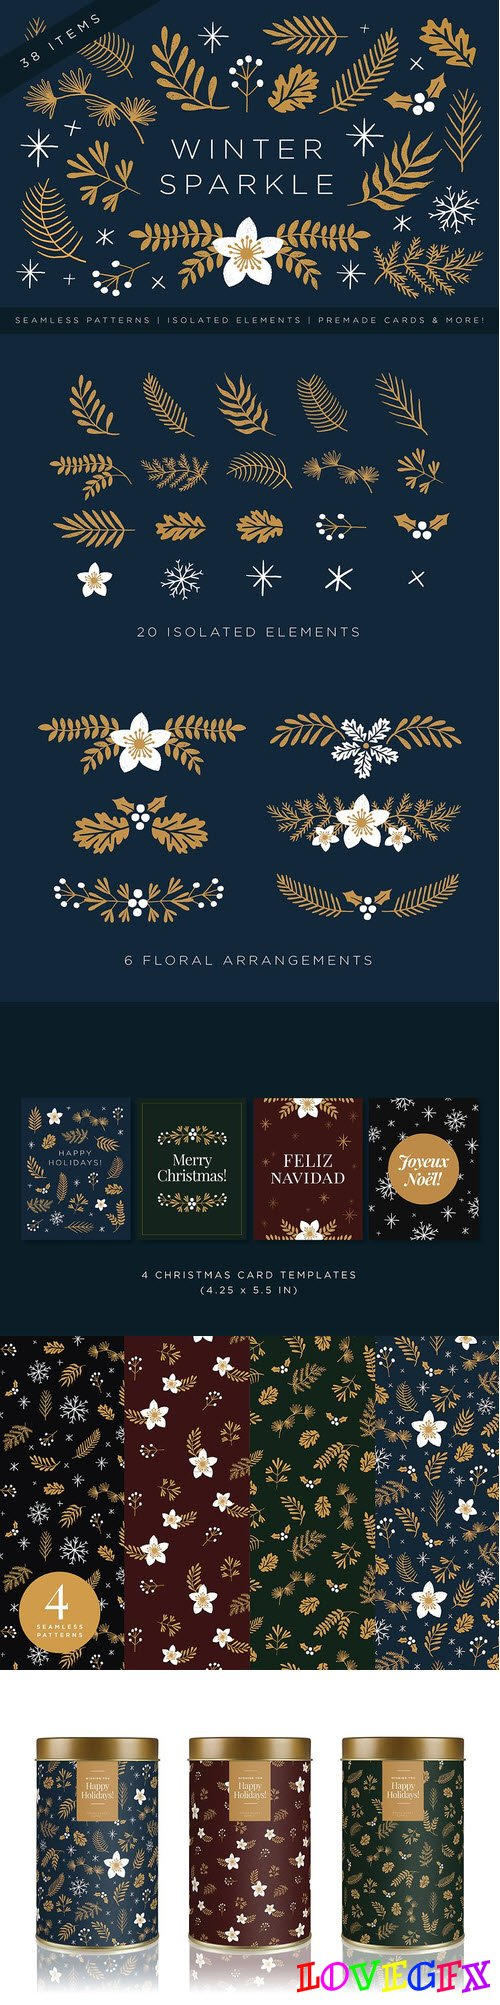 Elegant Christmas Graphic Set 2020297